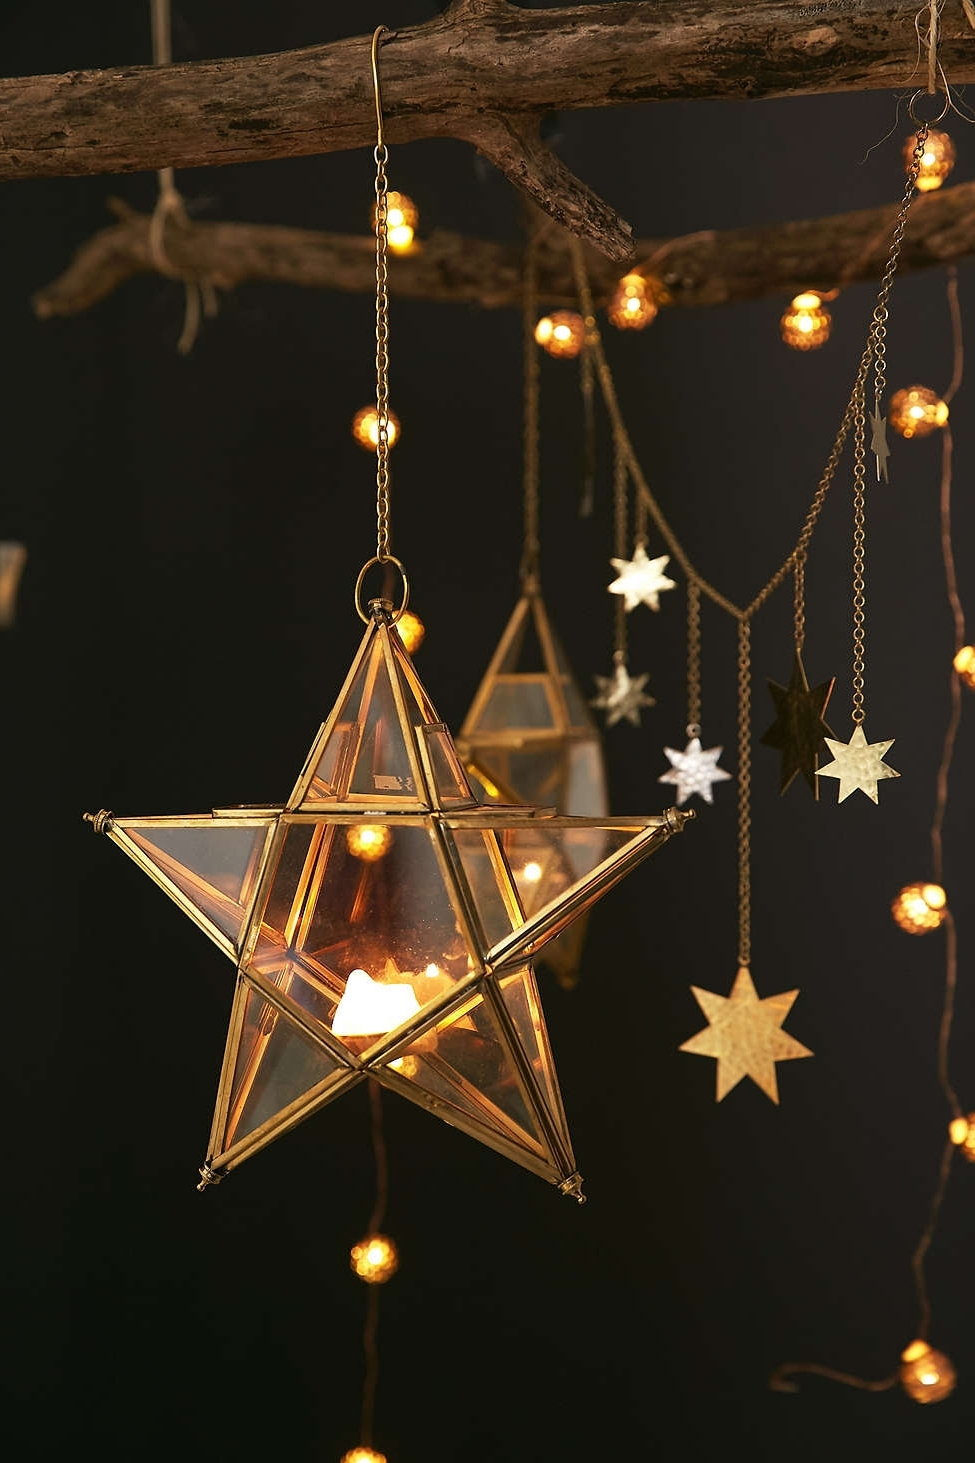 Outdoor Hanging Star Lights Throughout Most Up To Date Hanging Star Terrarium (View 11 of 20)